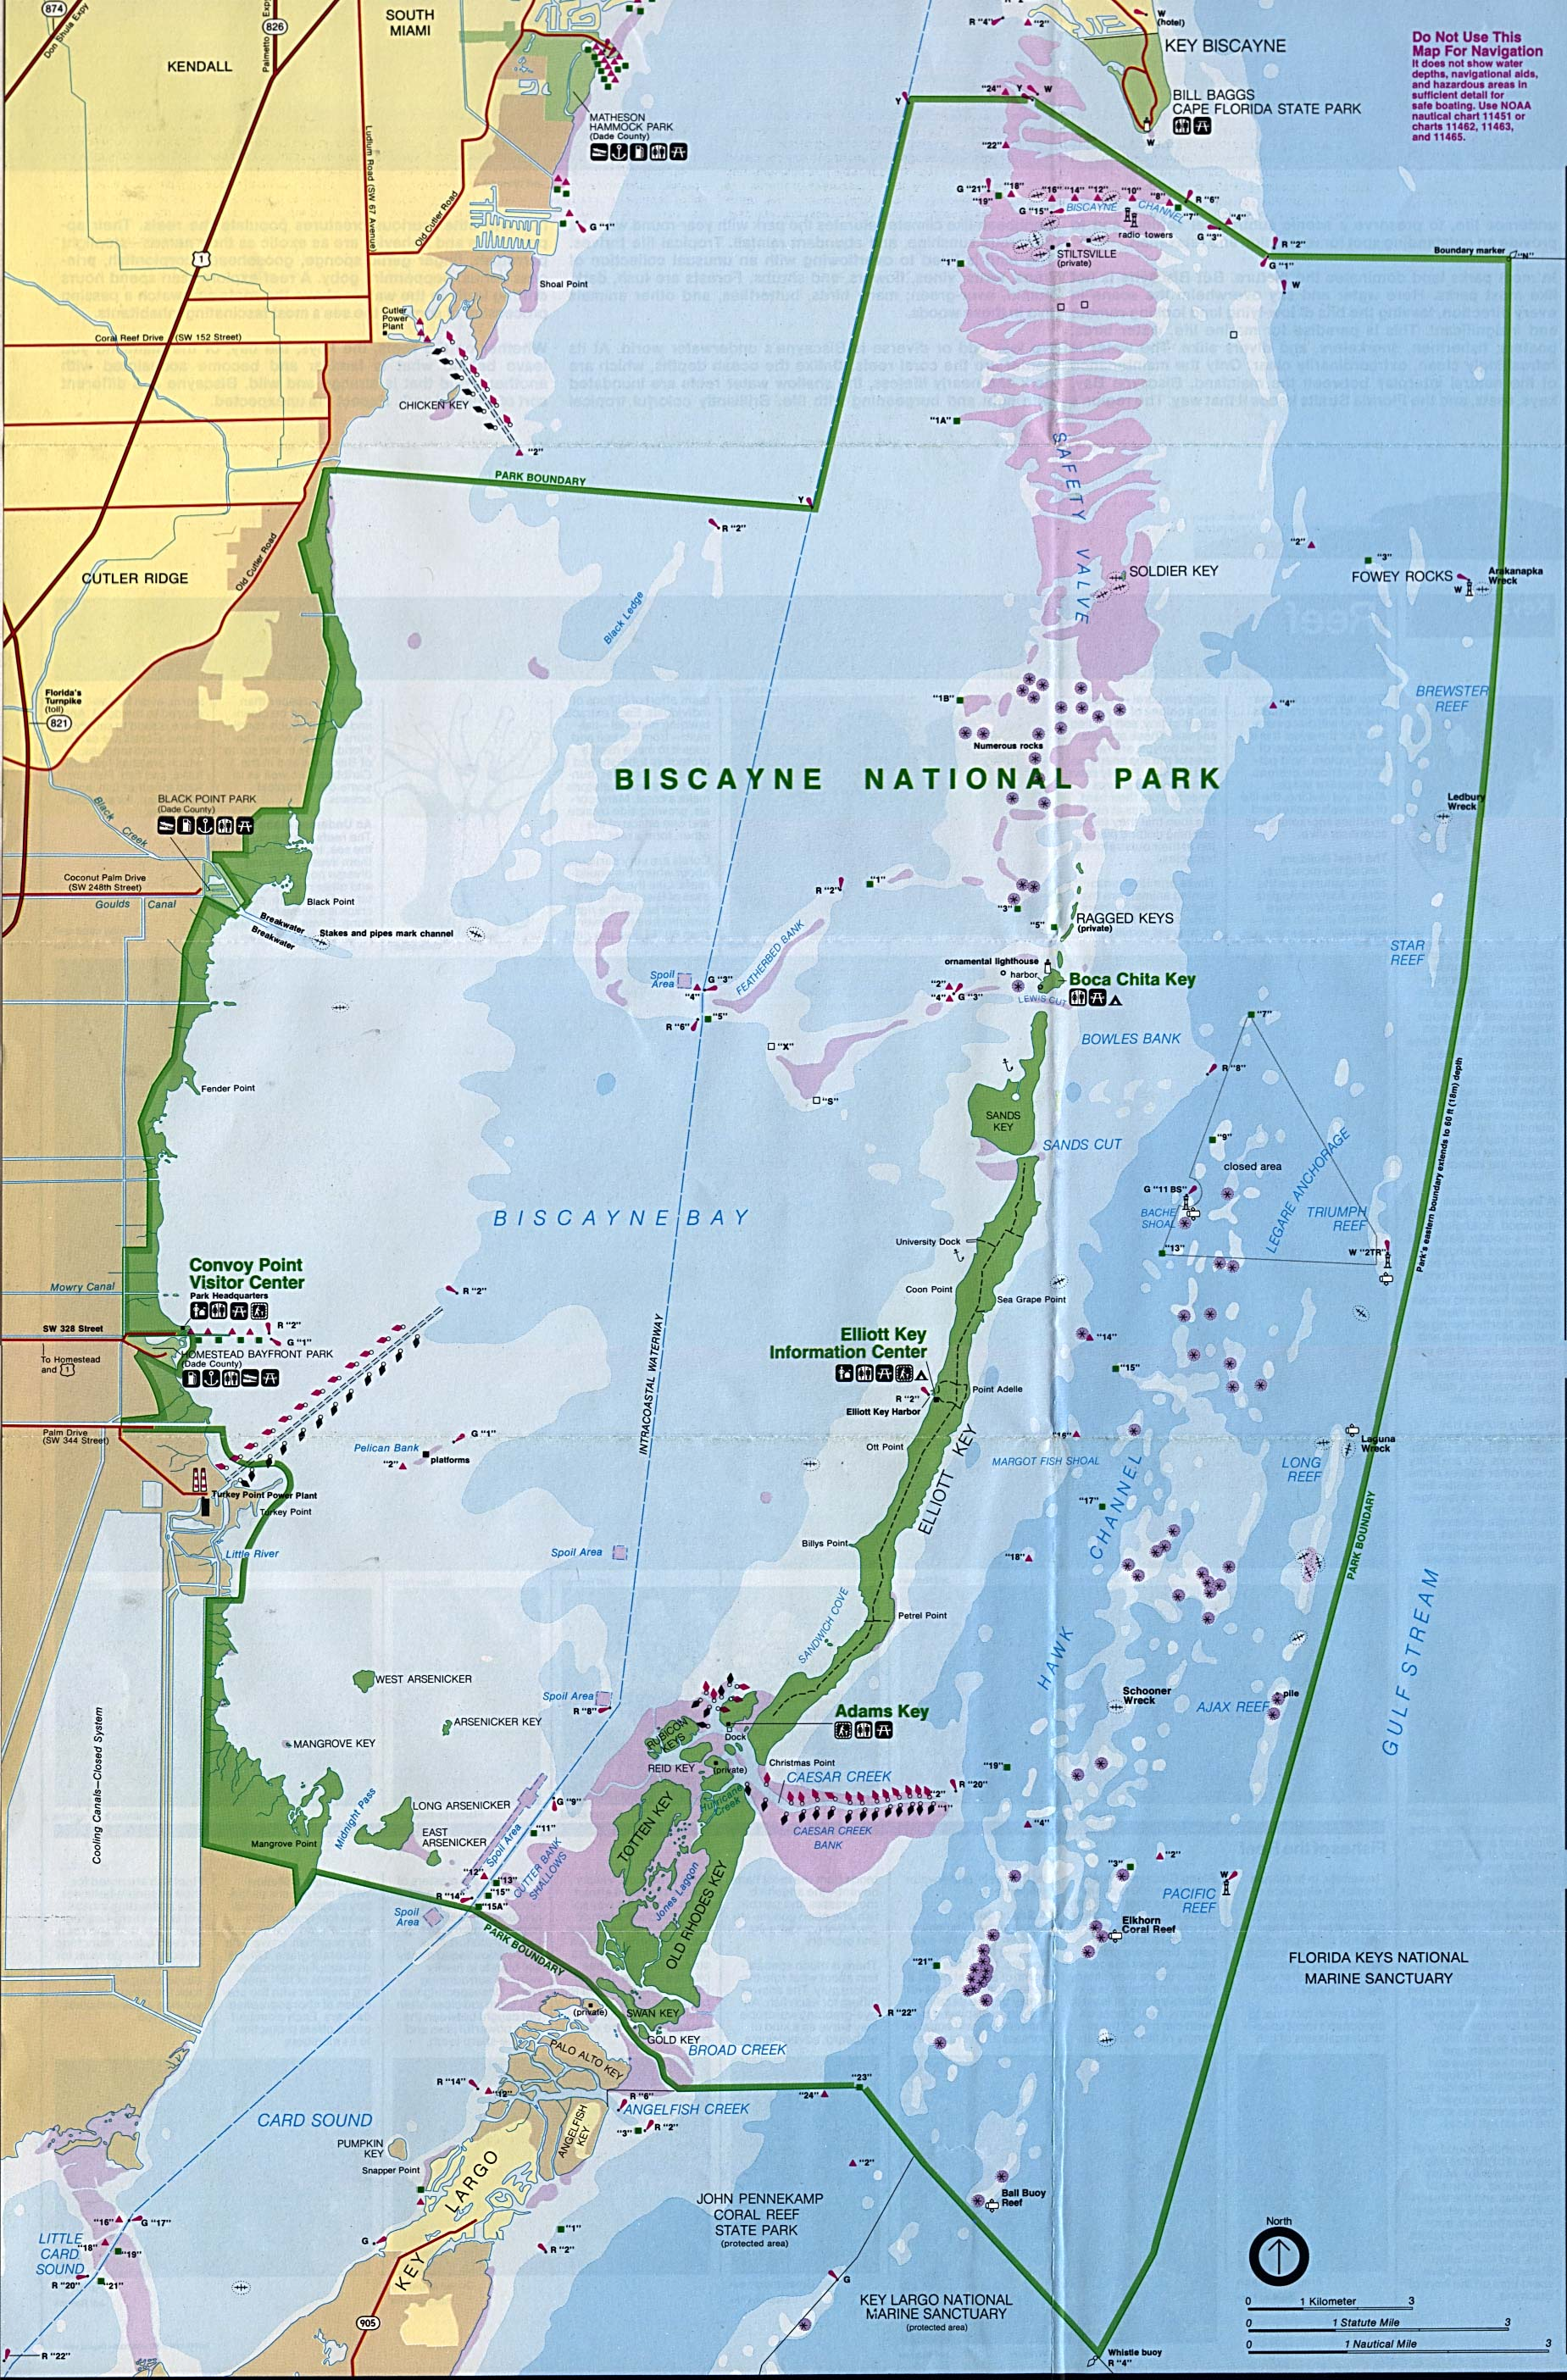 004 Biscayne National Park Map Essay Wonderful Full